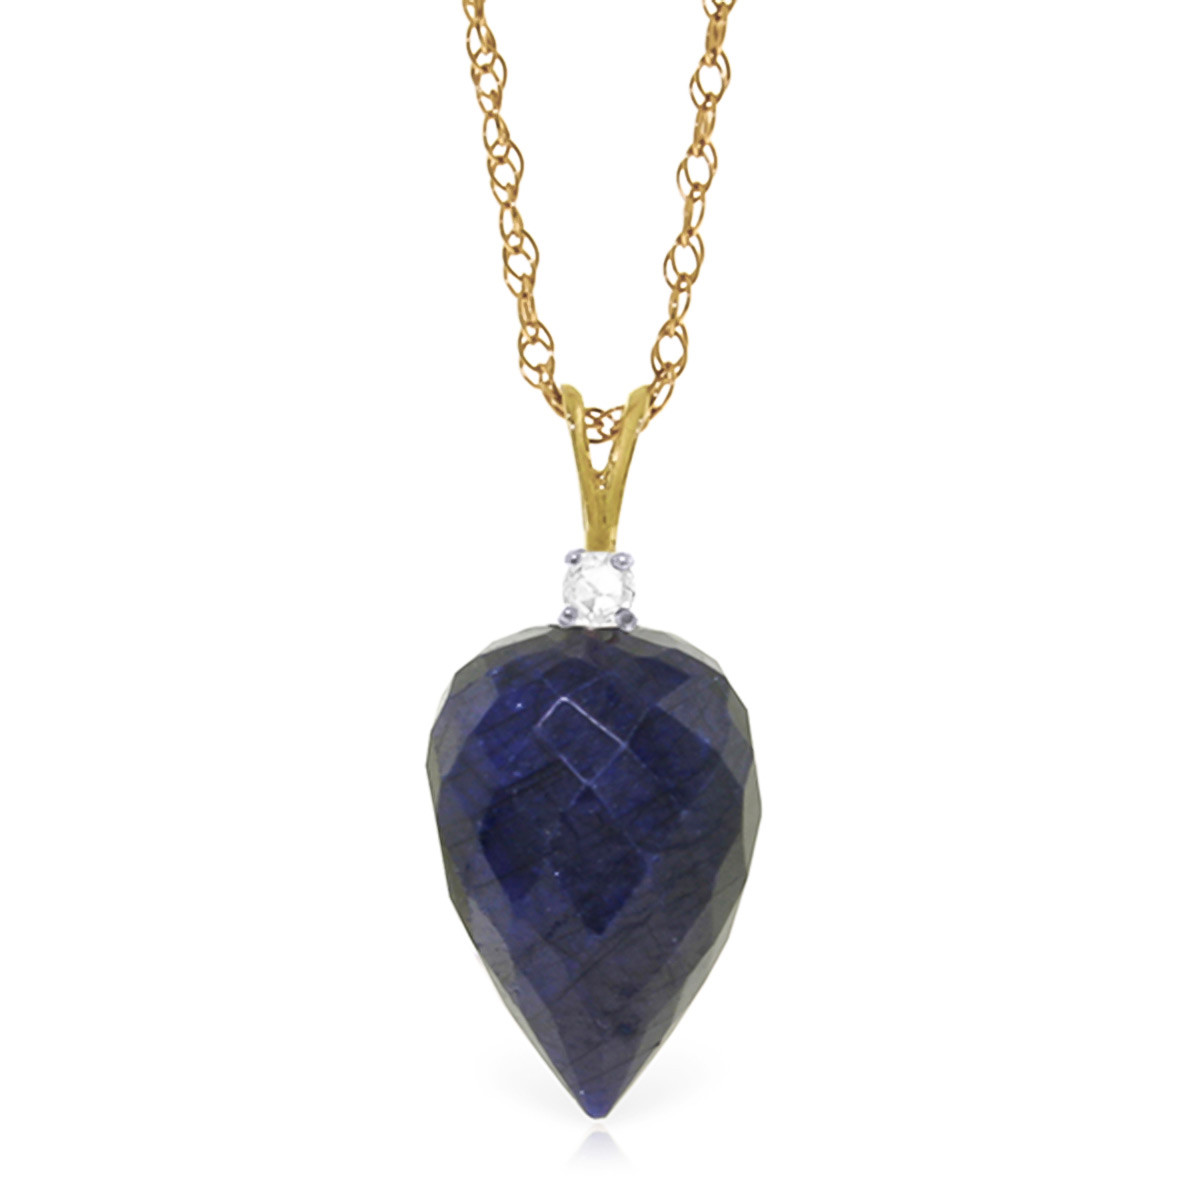 Pointed Briolette Cut Sapphire Pendant Necklace 12.95 ctw in 9ct Gold